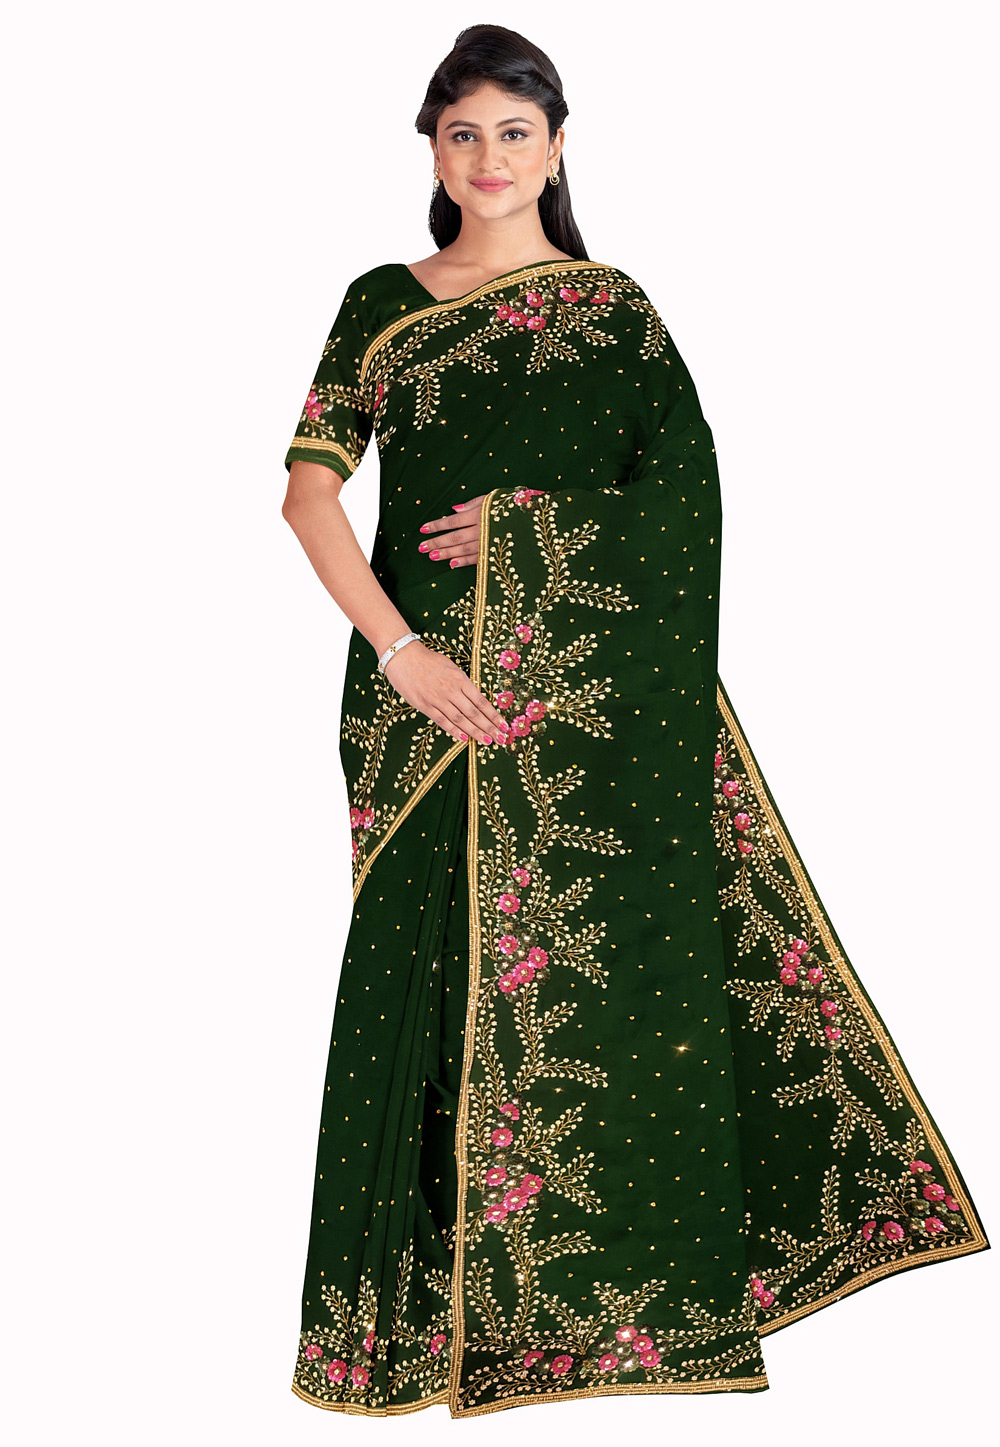 Green Georgette Saree With Blouse 205644